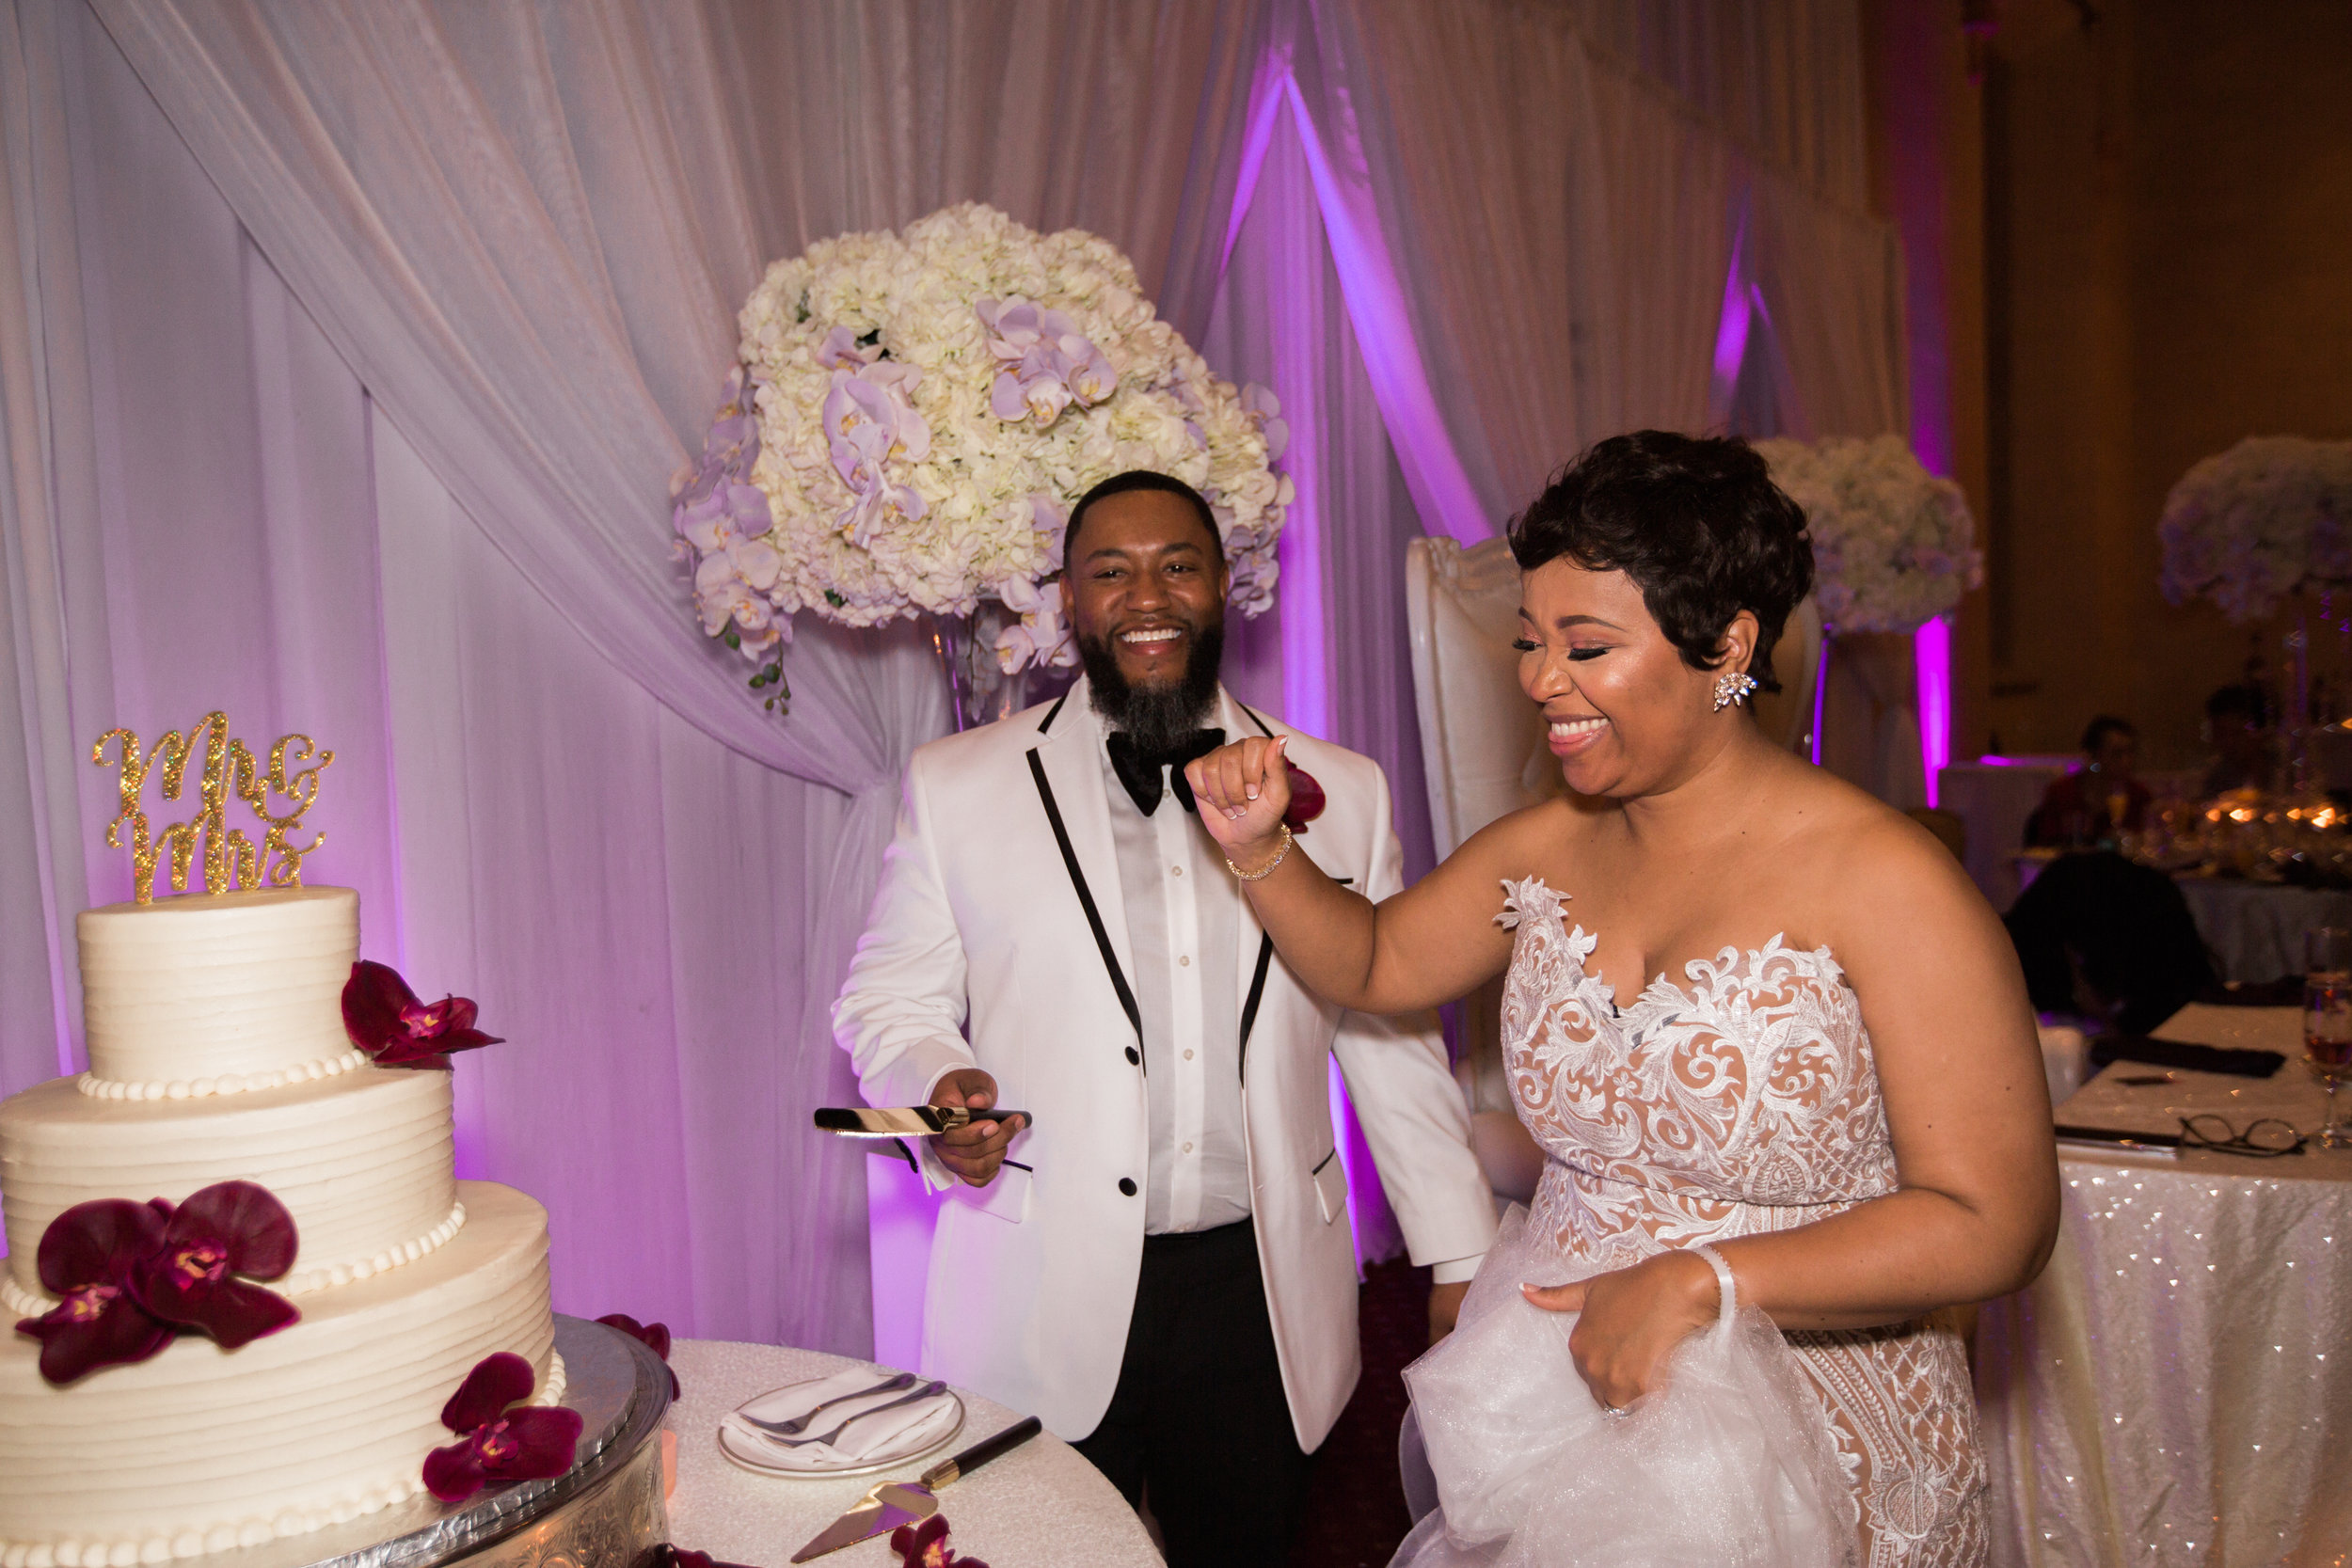 Best Classic Black Bride at The Grand Baltimore Maryland Husband and Wife Wedding Photographers Megapixels Media (83 of 98).jpg